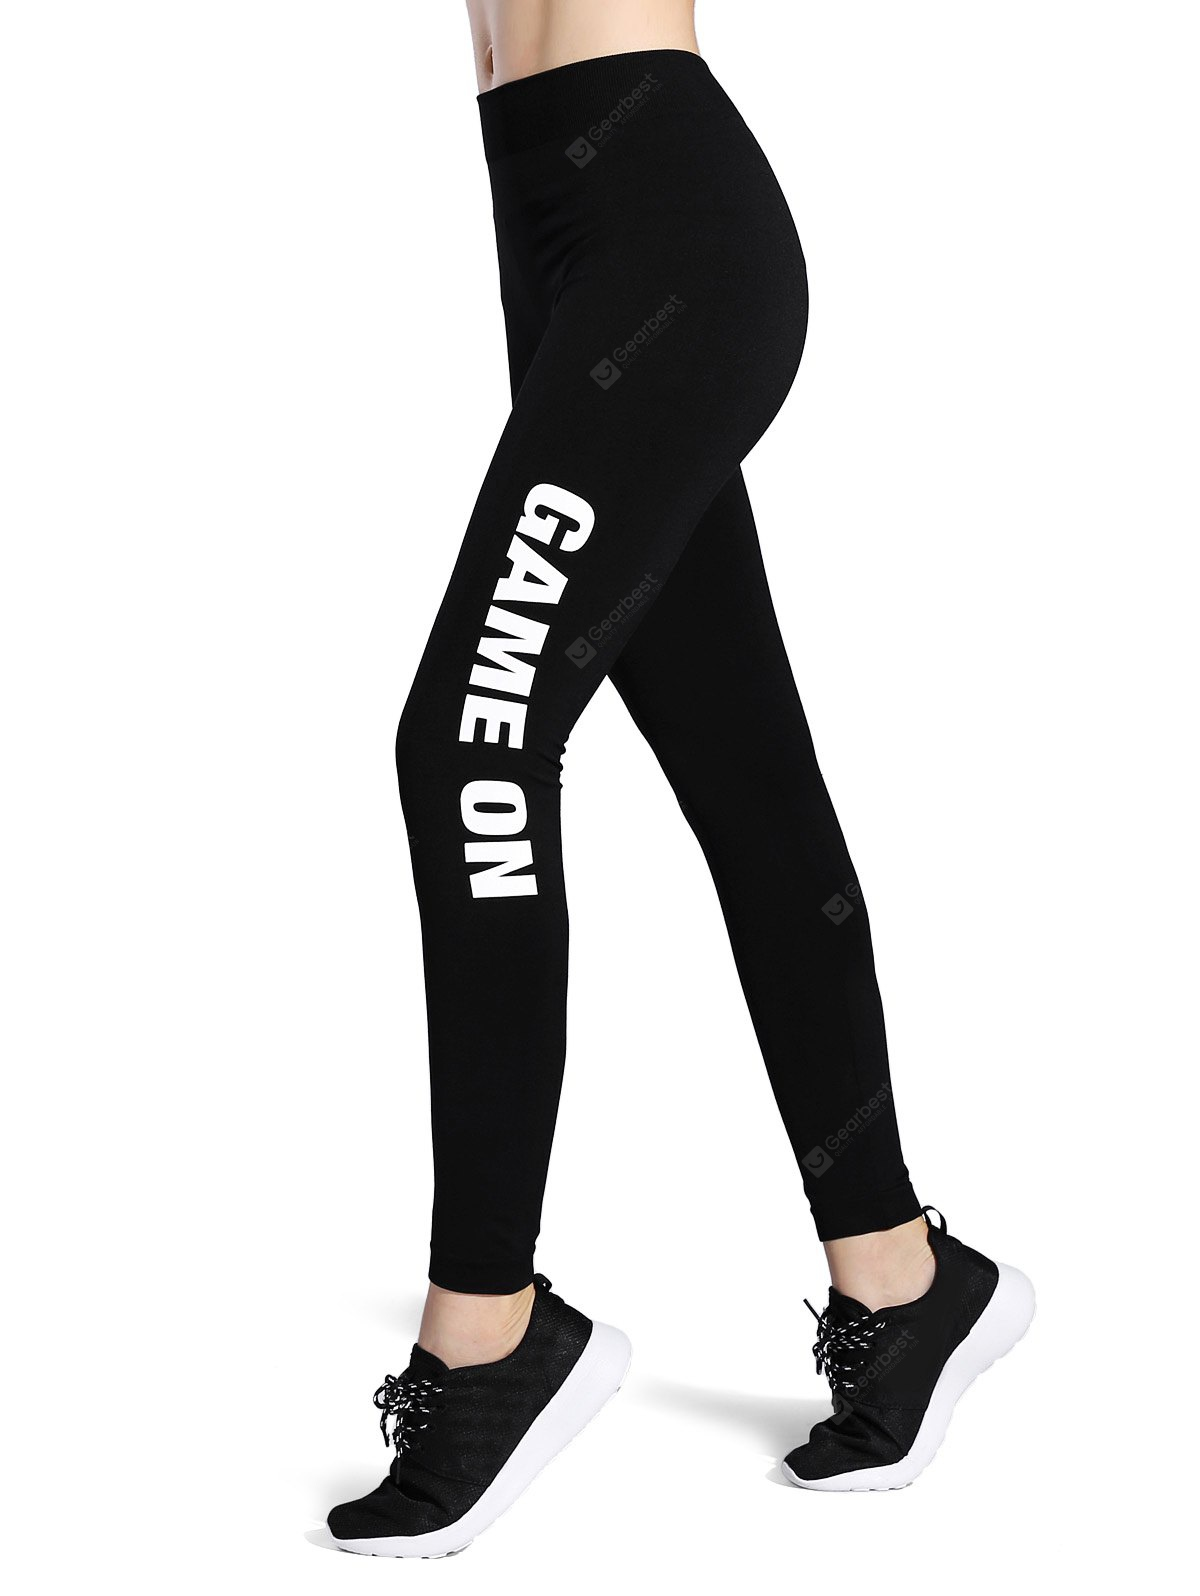 20170218093817 98366 - Game On Print Stretchy Sporty Leggings , GearBest